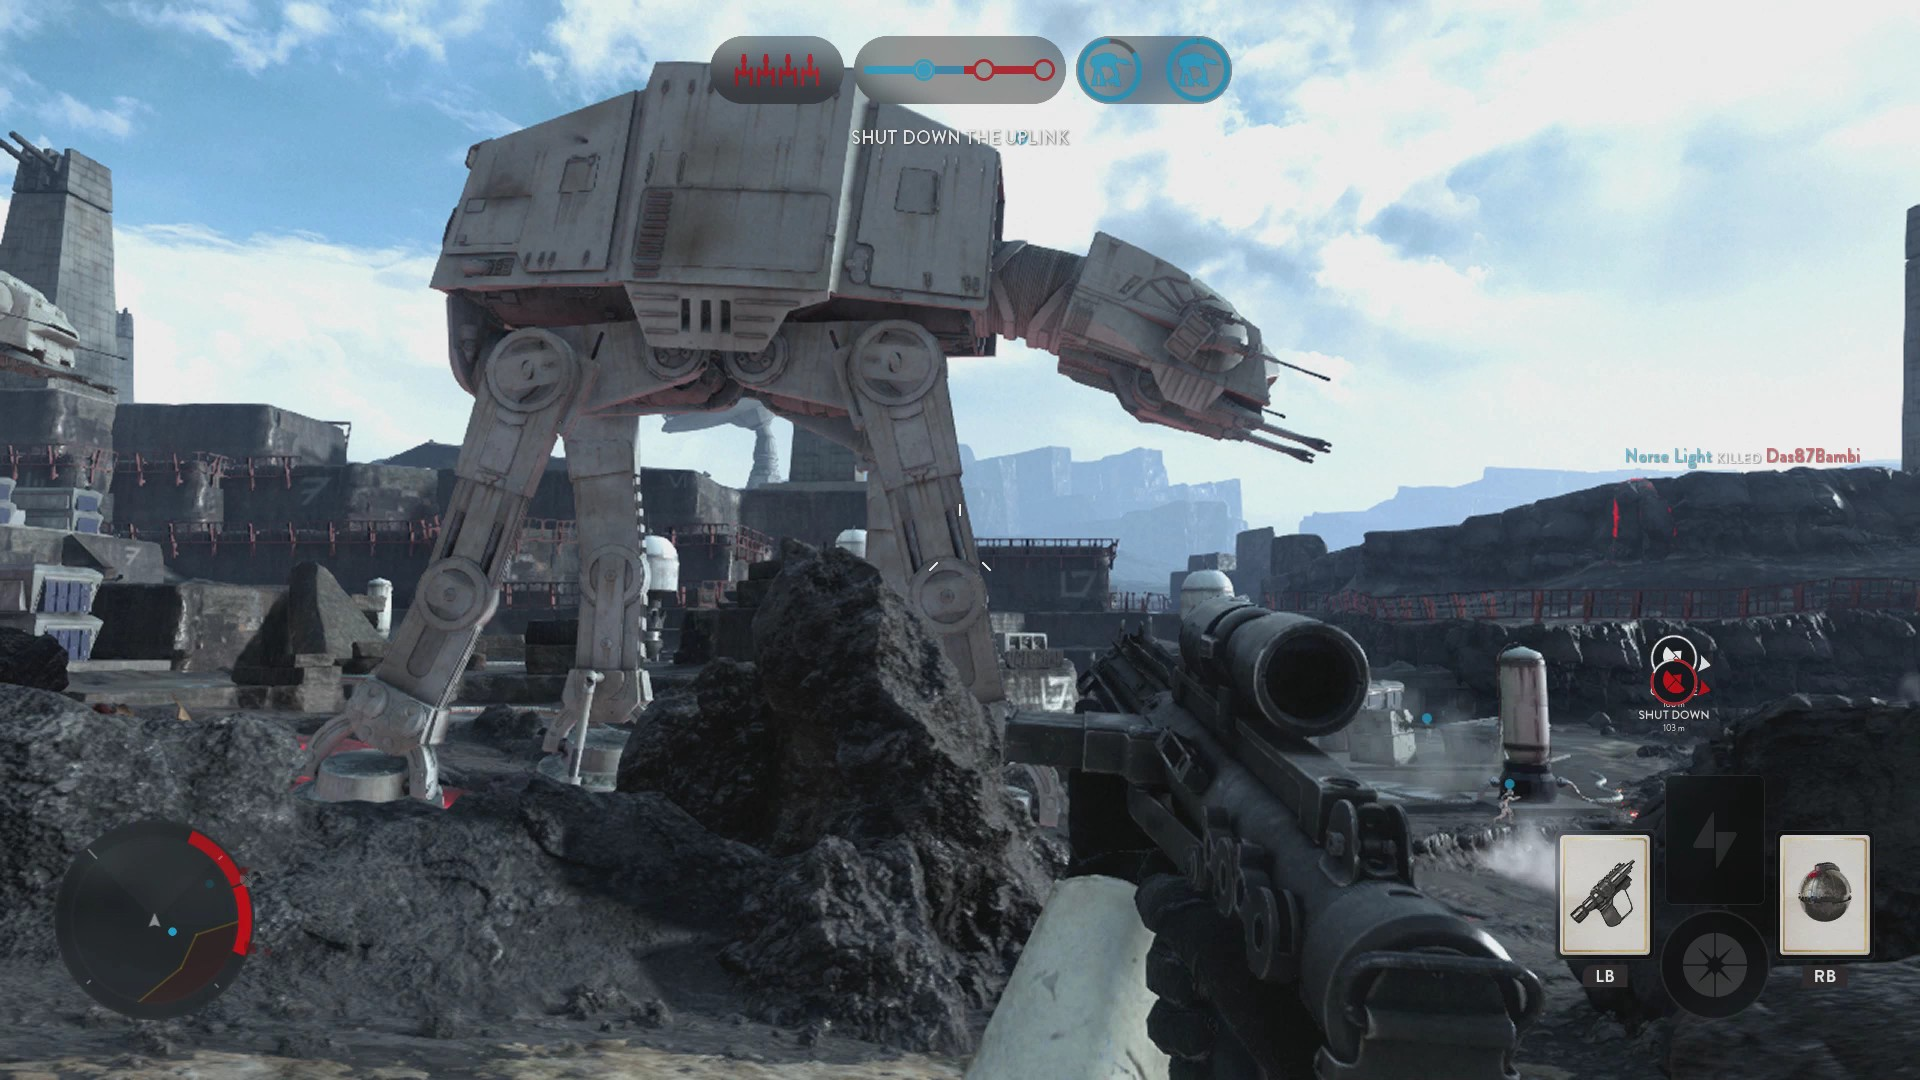 a scene from EA's first Battlefront game